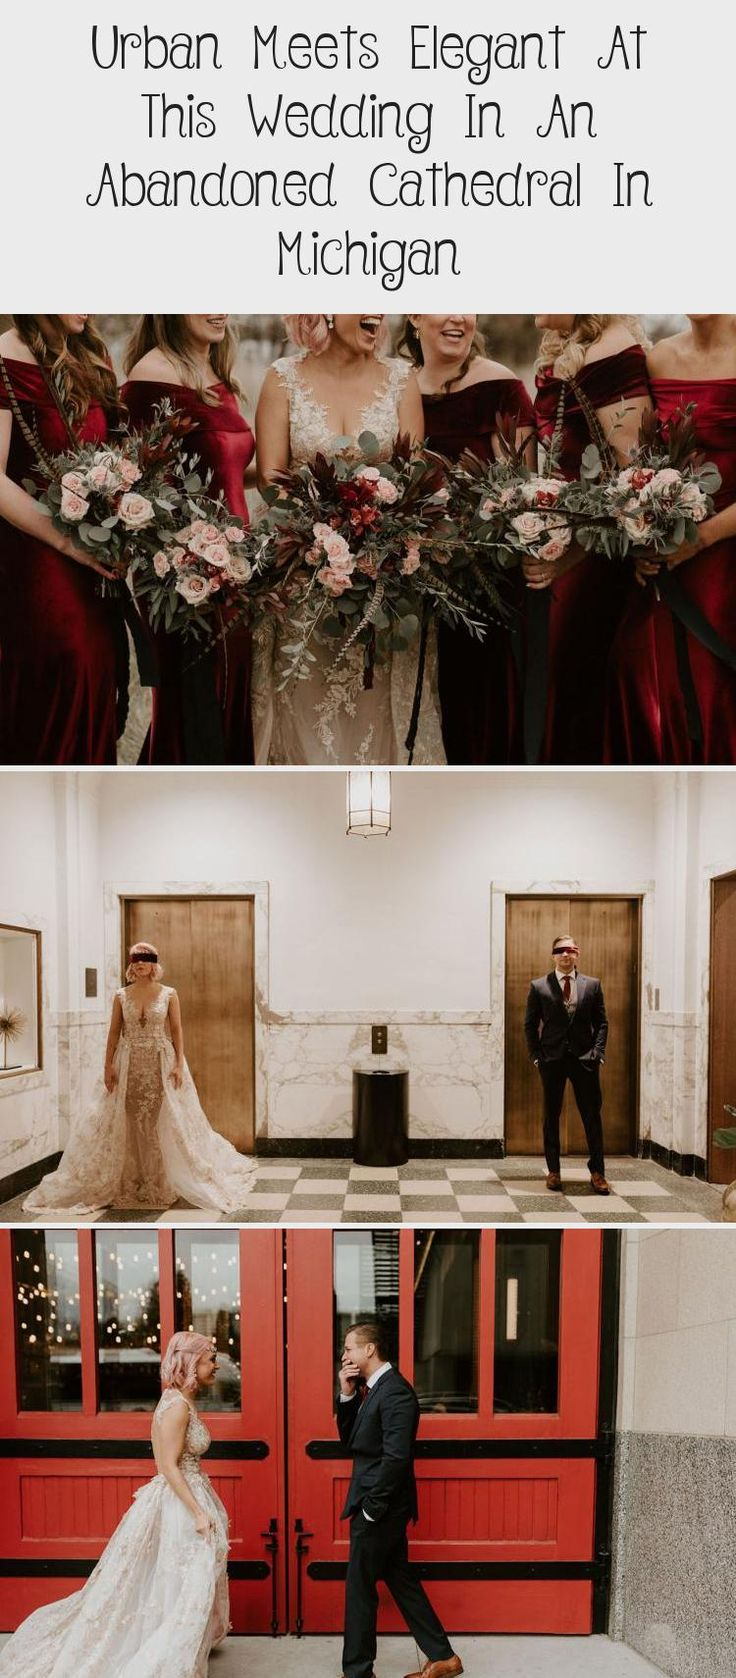 Urban Meets Elegant at this Wedding in an Abandoned Cathedral in Michigan - Green Wedding Shoes #PeachBridesmaidDresses #LilacBridesmaidDresses #BridesmaidDressesMint #BridesmaidDressesPlusSize #VelvetBridesmaidDresses